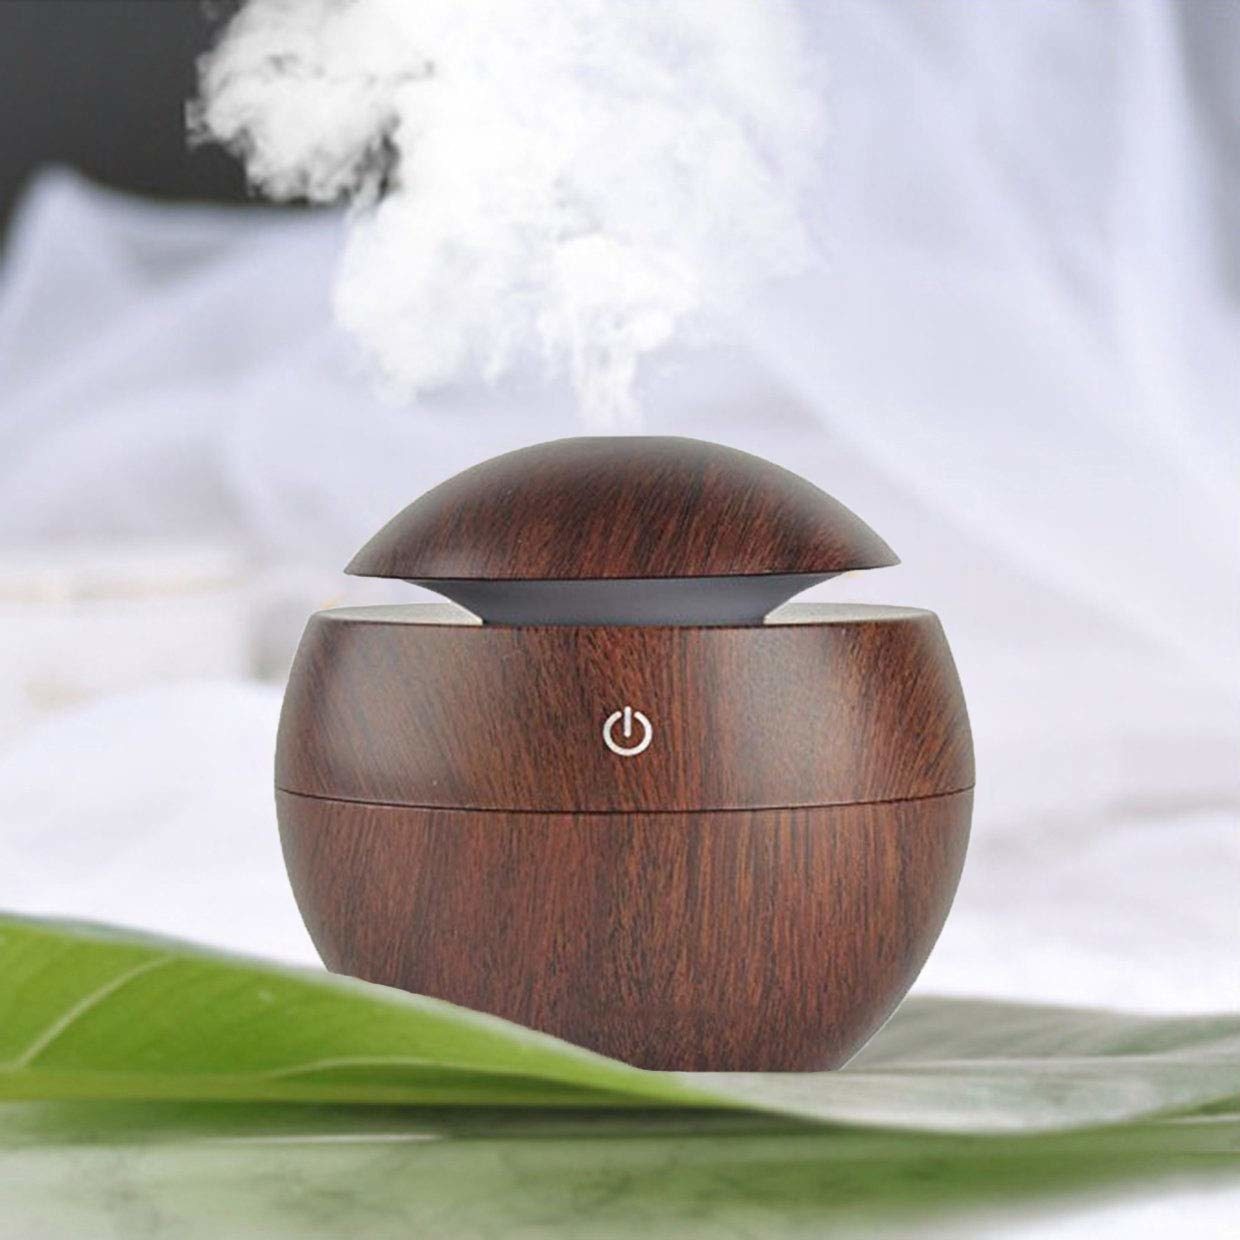 A brown diffuser releasing essential oil vapour into the air